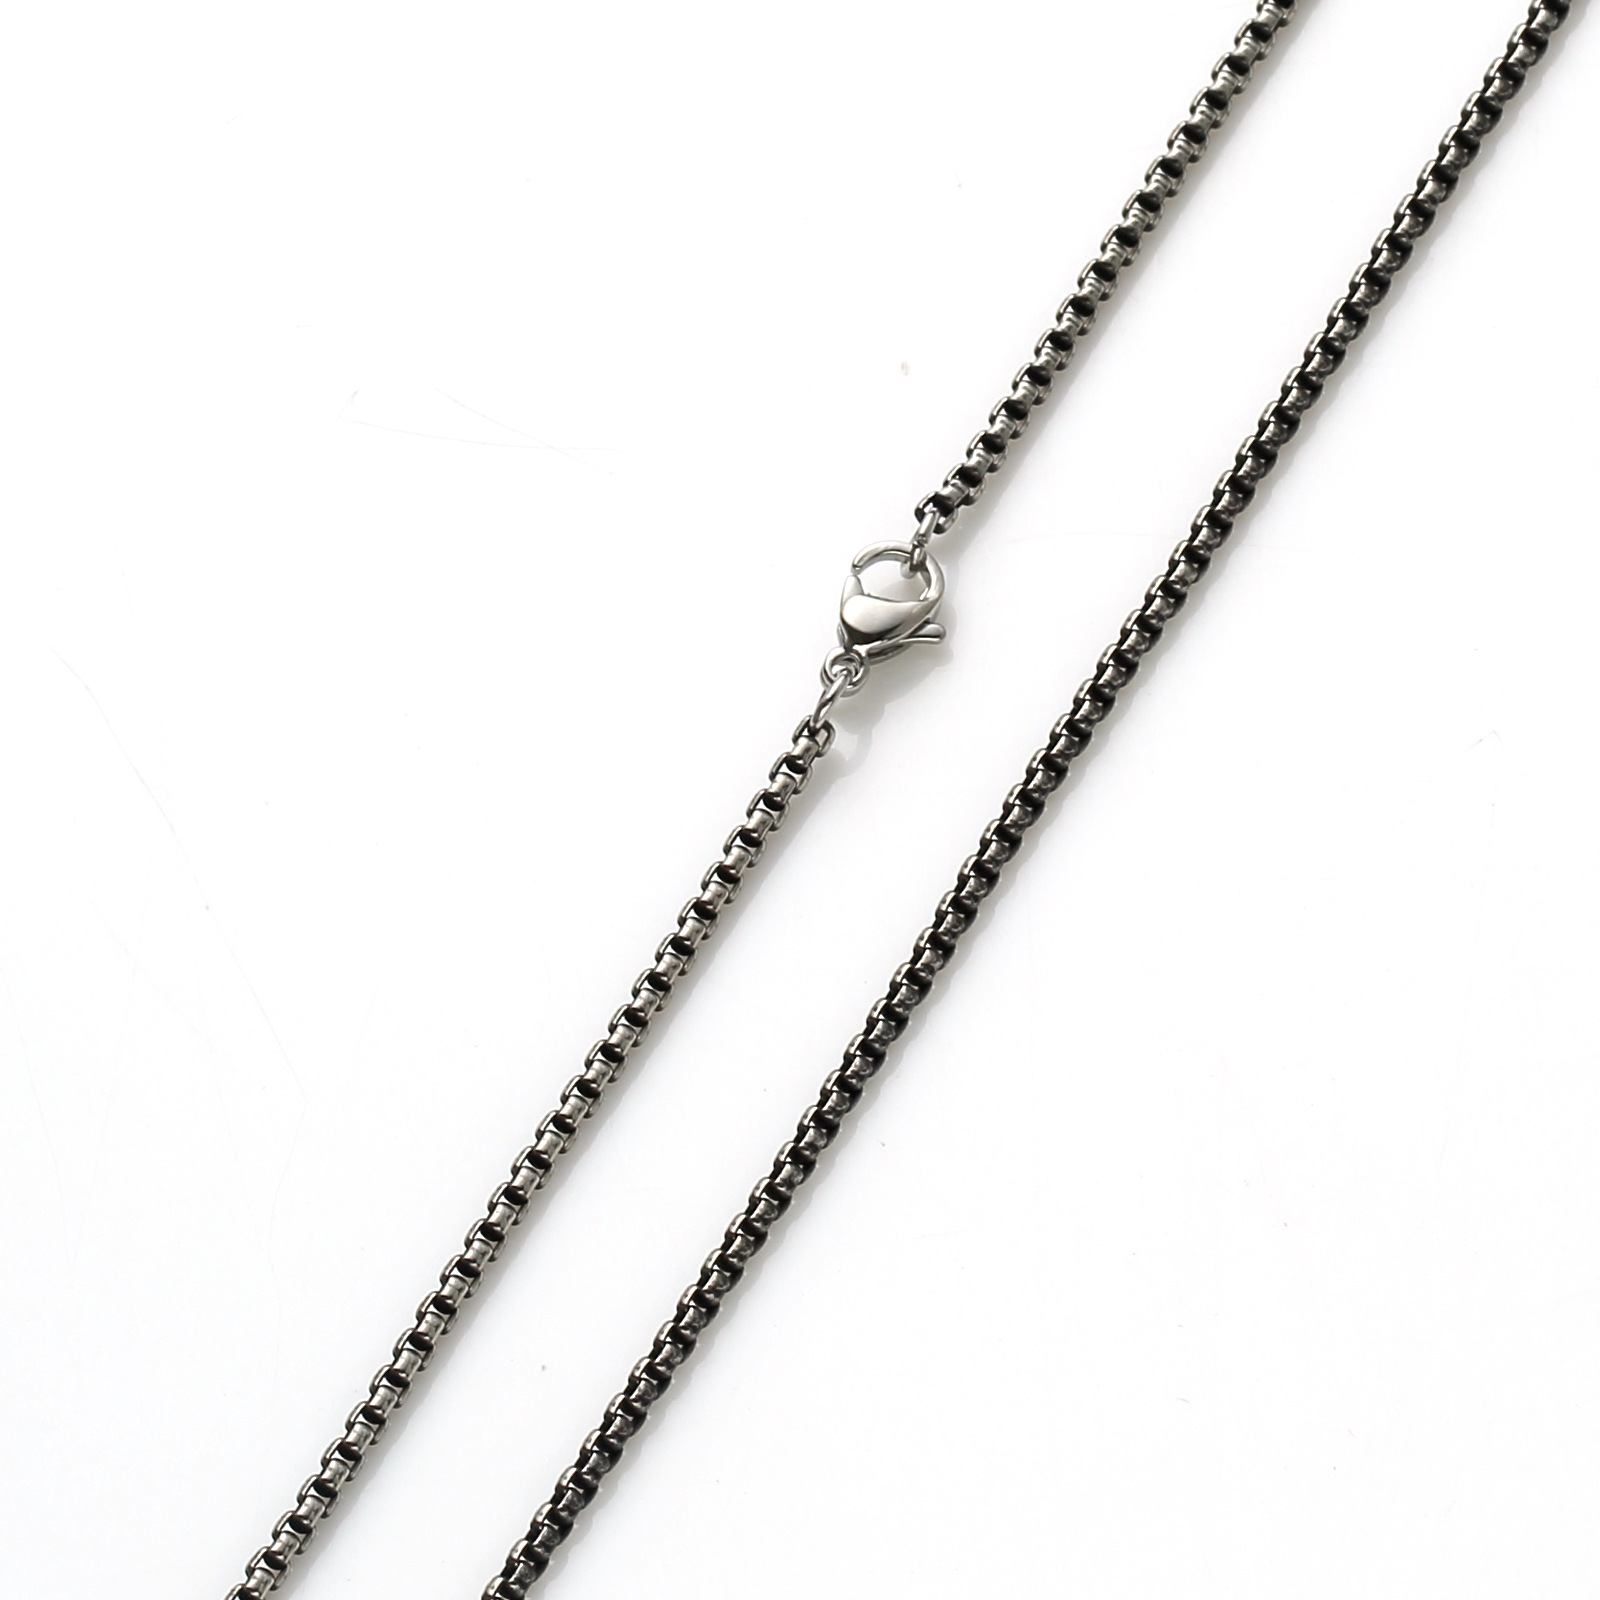 Simple Stainless Steel Chain for Plain Casual Looks